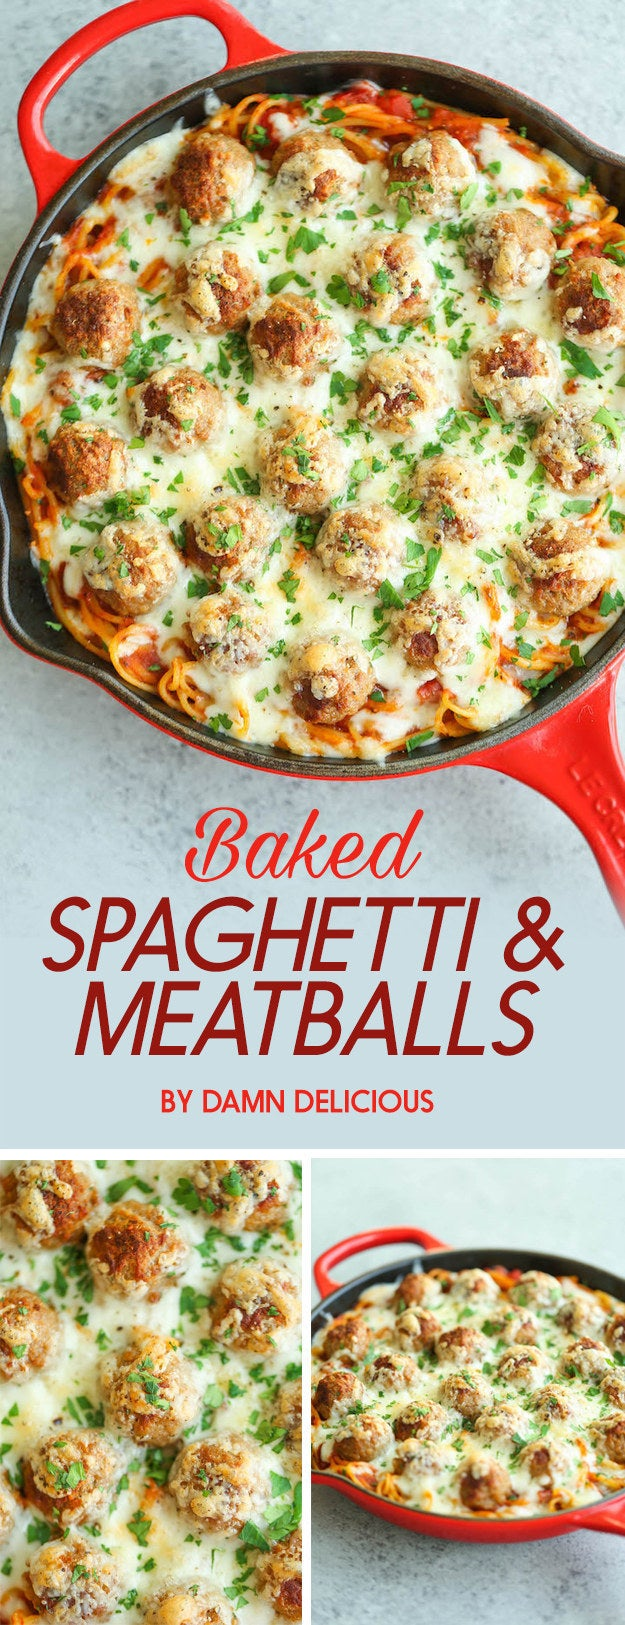 An easy way to serve spaghetti and meatballs for a crowd. Plus, you get that deliciously crispy cheese on top. Get the recipe here.